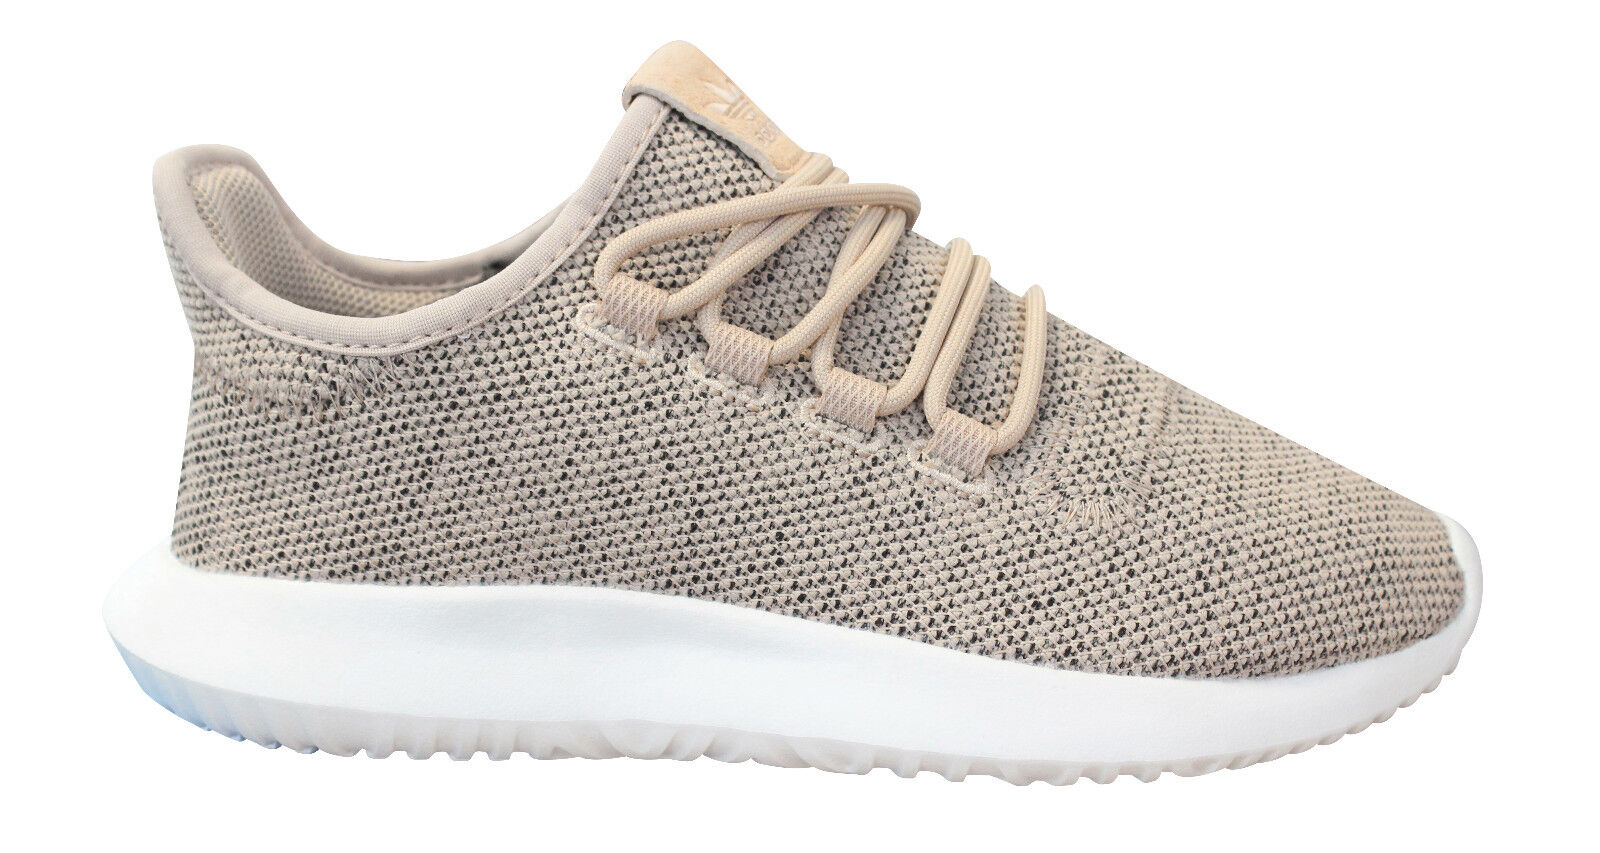 Adidas Originals Tubular Shadow Womens Trainers Lace Up shoes CG4515 M17